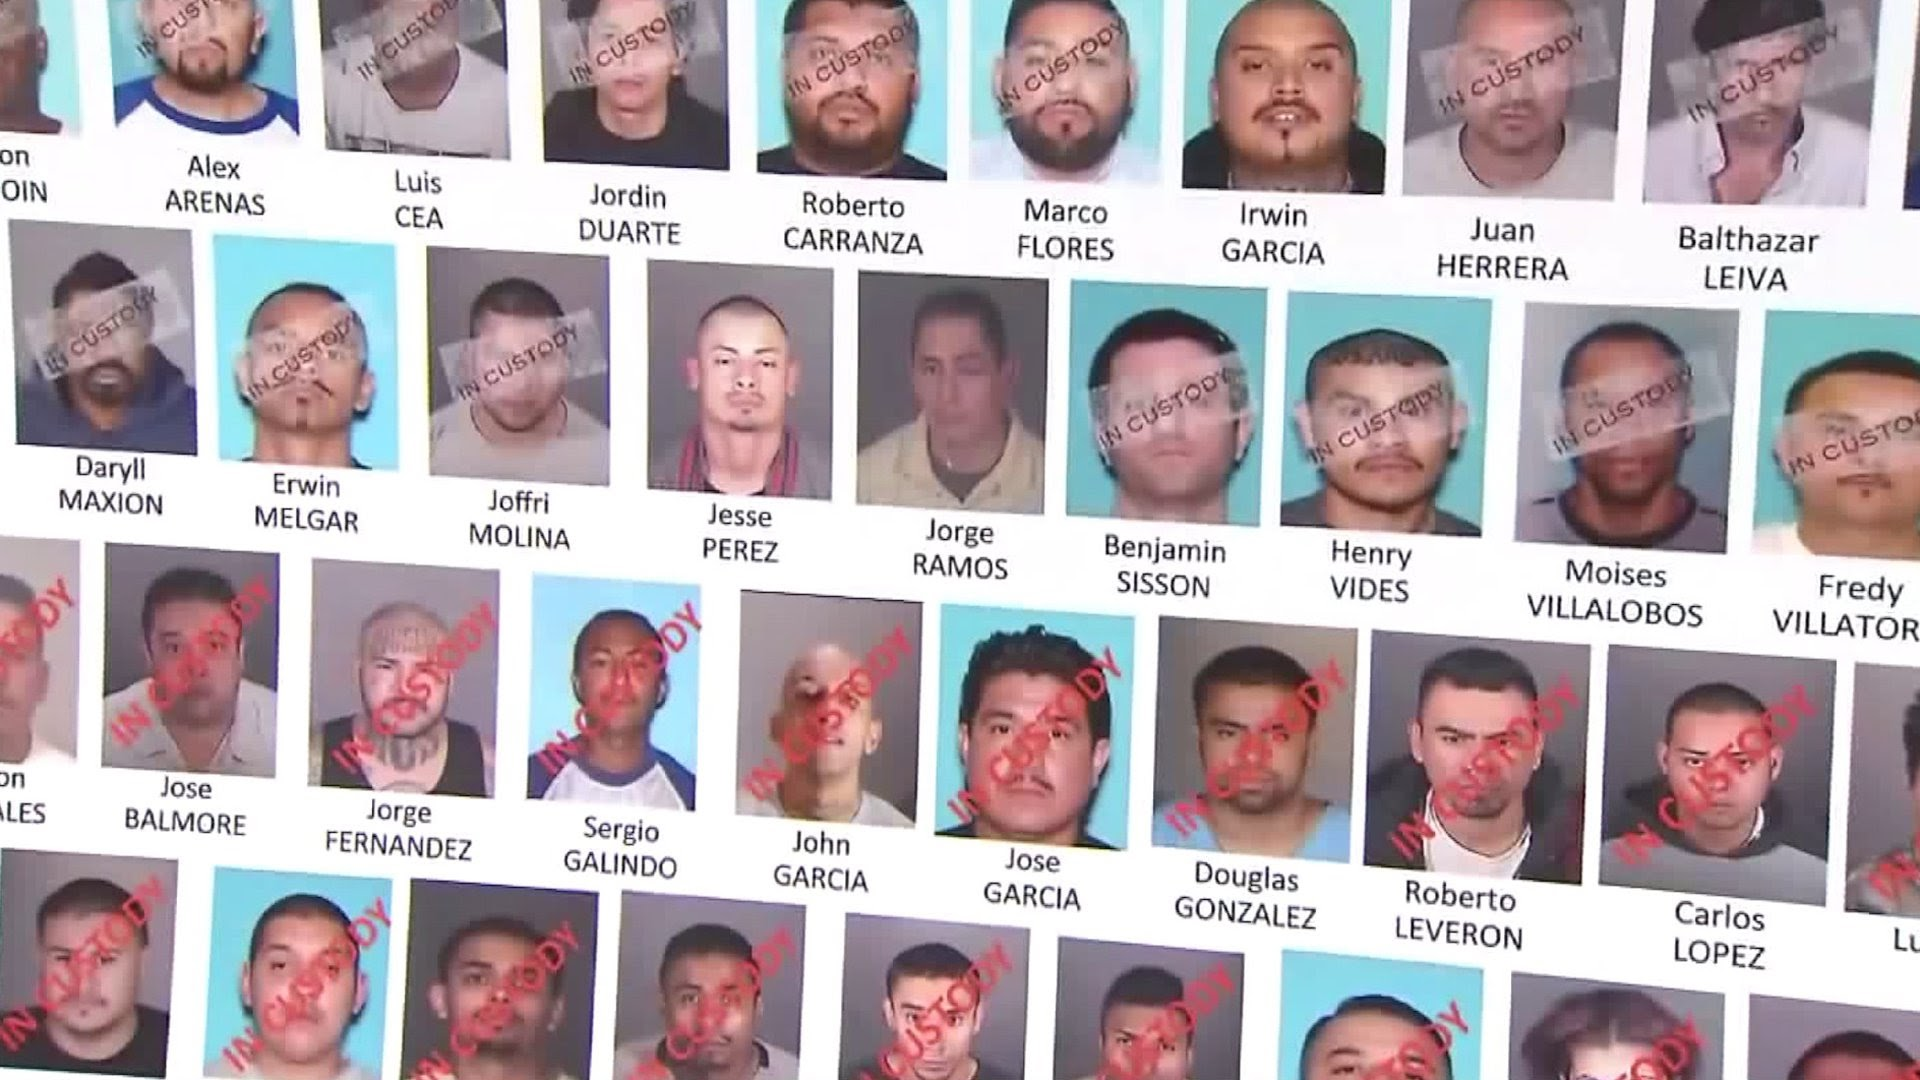 Media report ICE bust of violent gang members -- Spero News reveals citizenship status